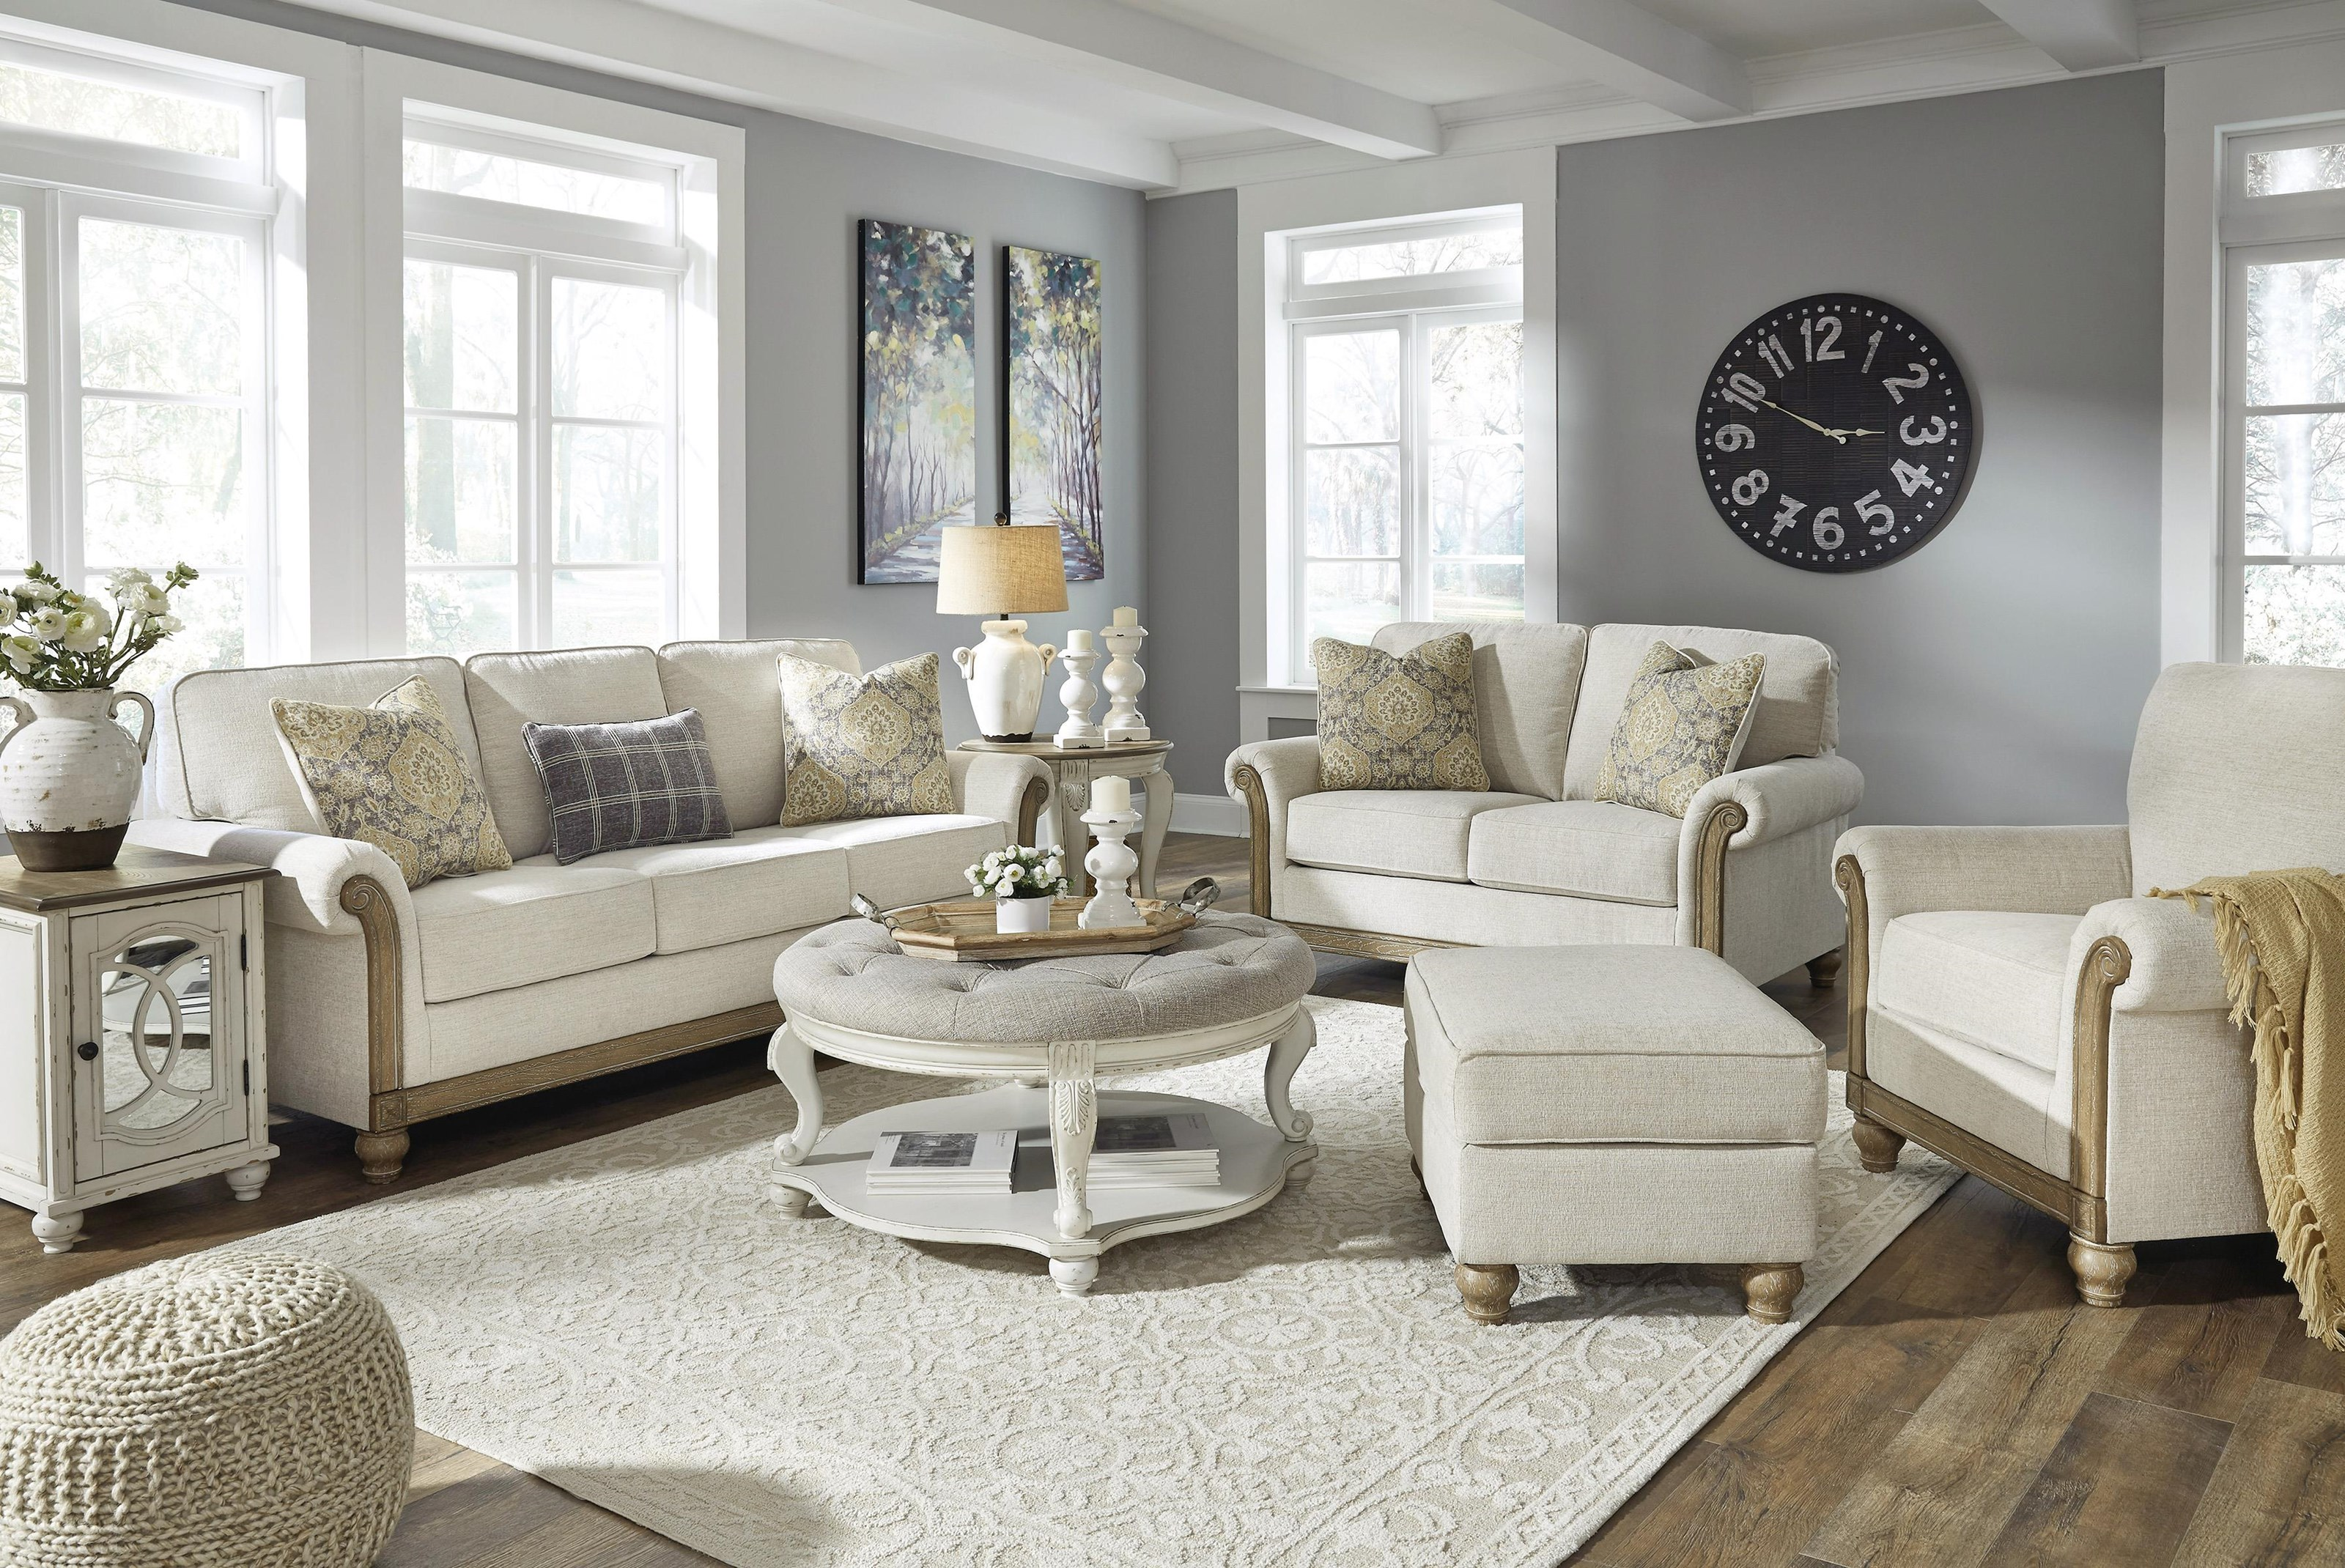 Stoneleigh Sofa and Chair Set by Benchcraft at Sam Levitz Furniture